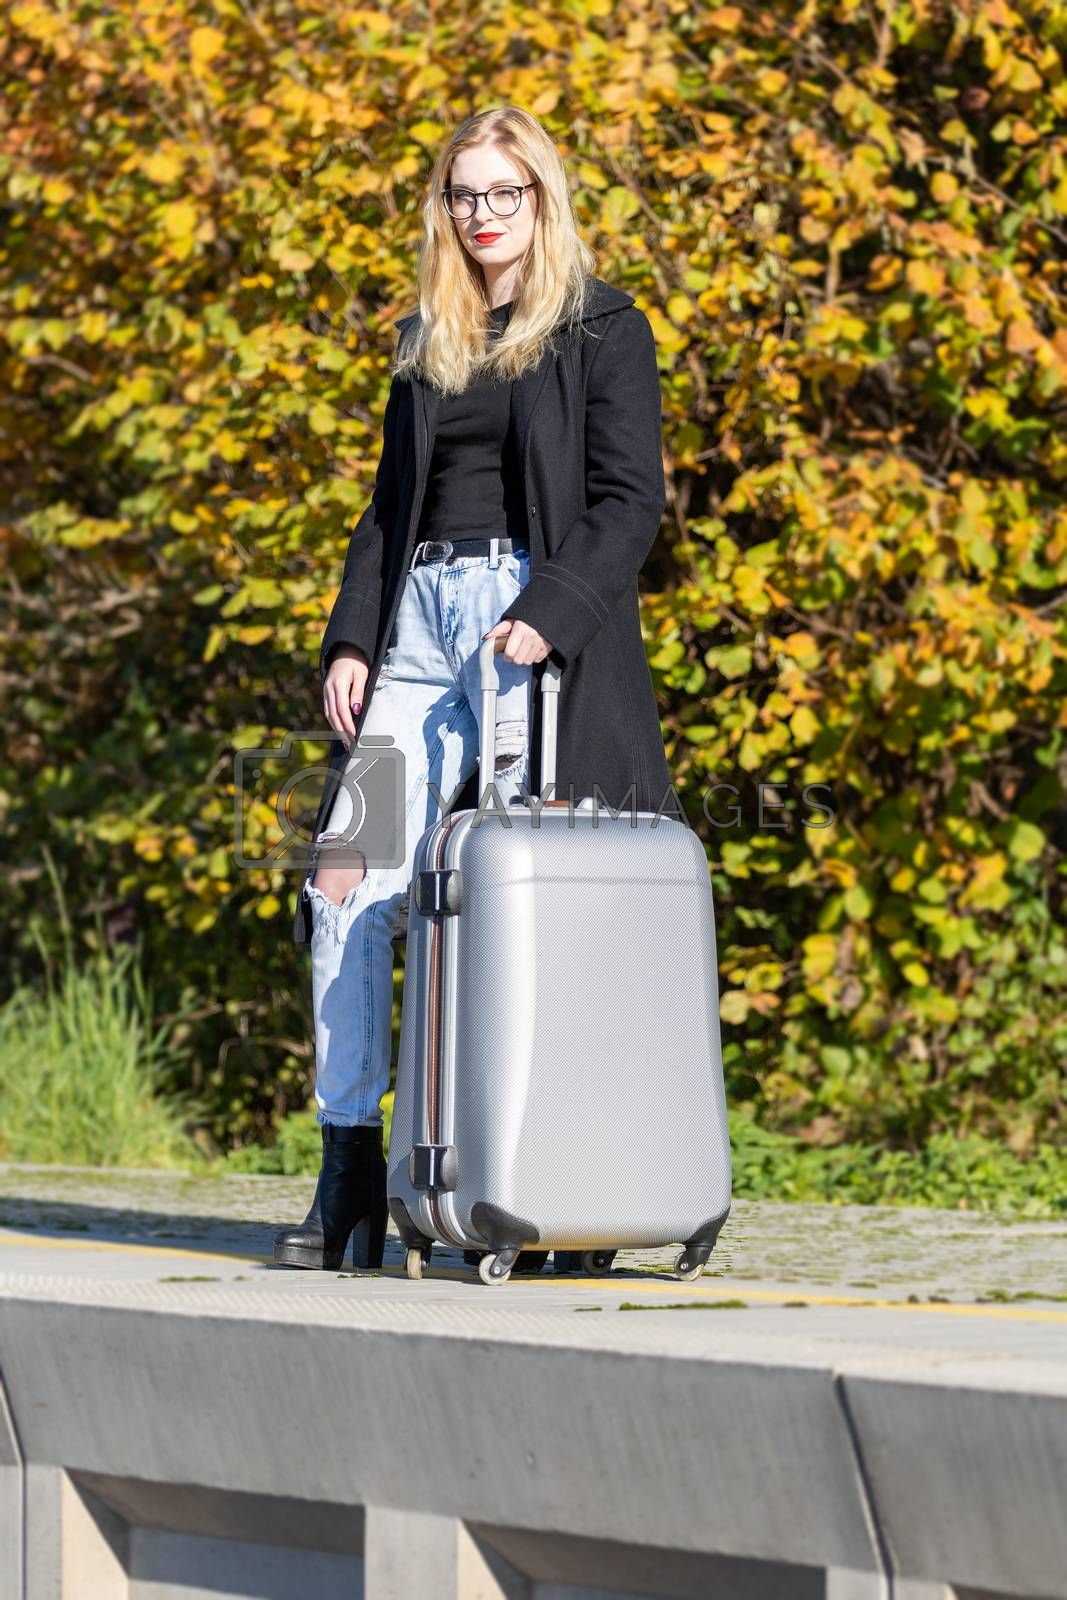 Young woman is posing with suitcase in the railway station looking at the camera.